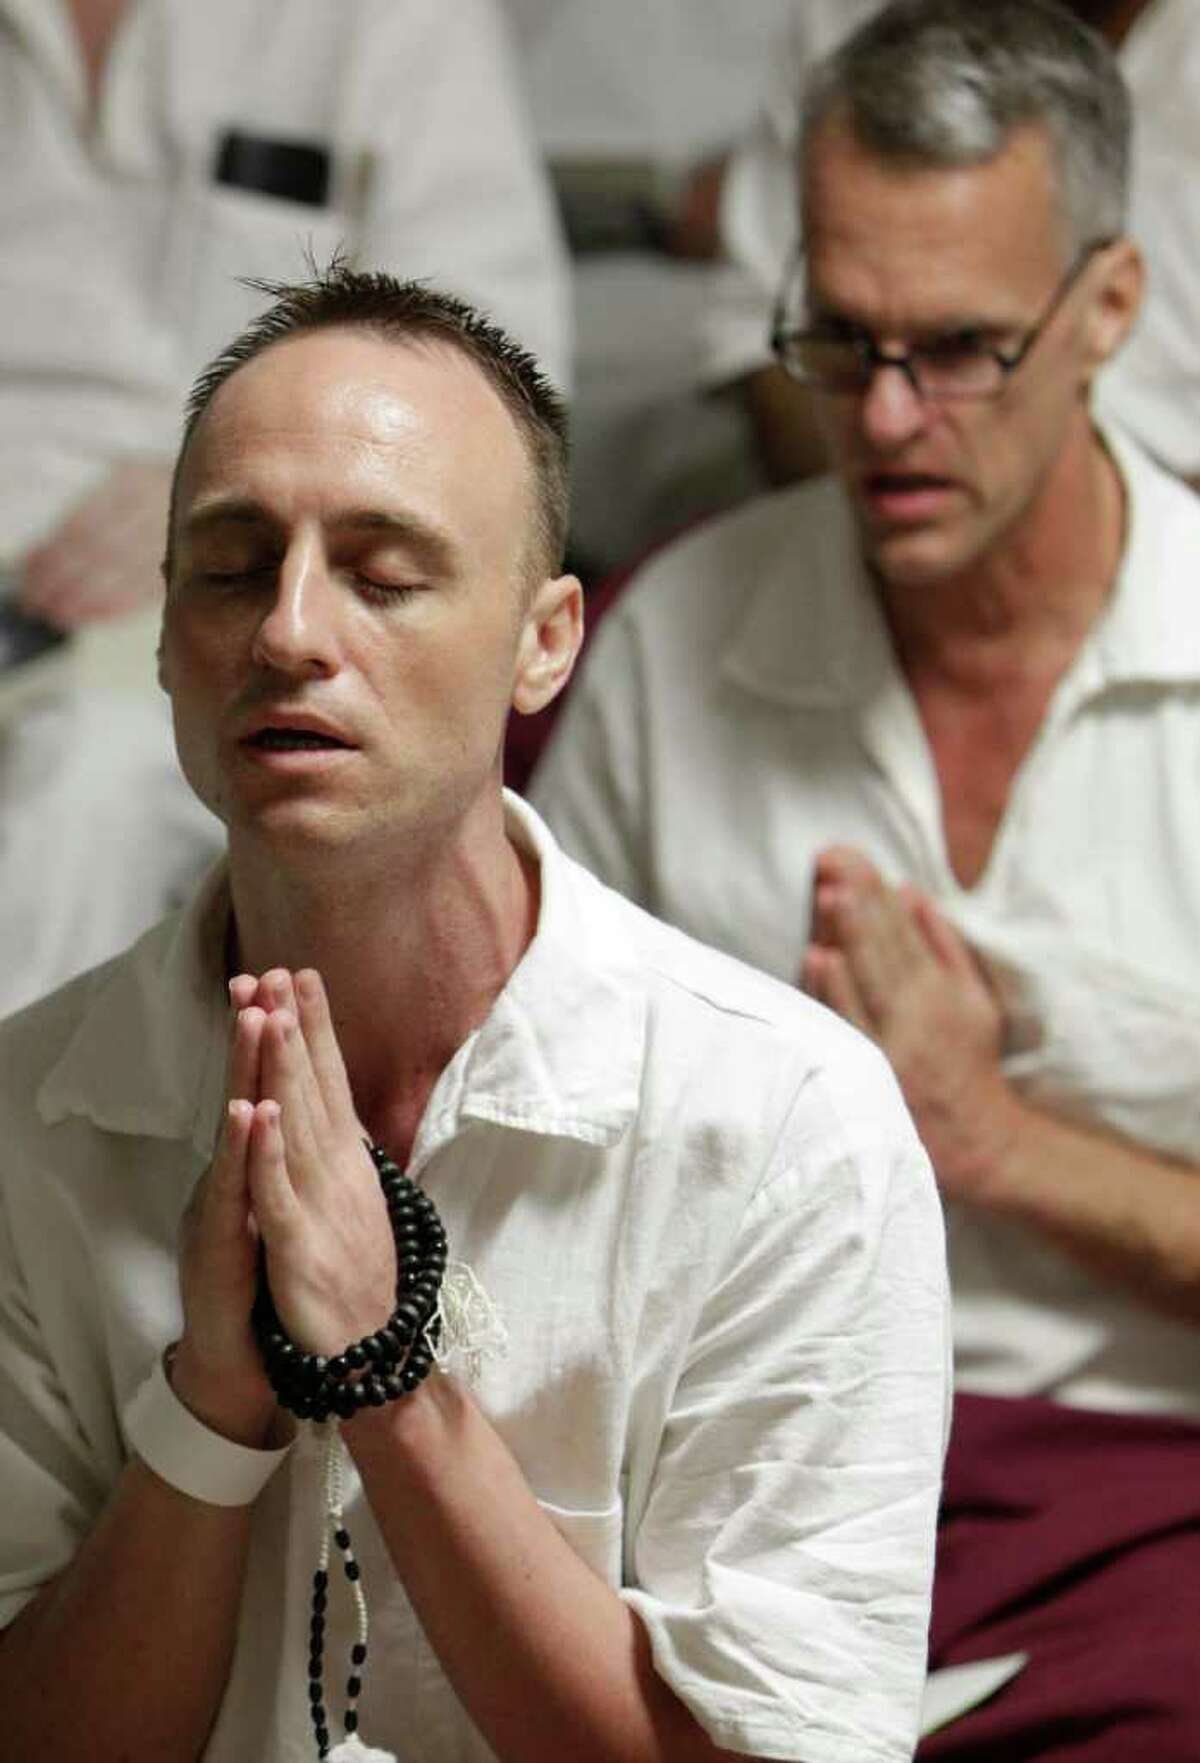 Conley Stagg, front, meditates during a class taught by Buddhist Terry Conrad at the Texas Department of Criminal Justice MarkStiles Unit in Beaumont.